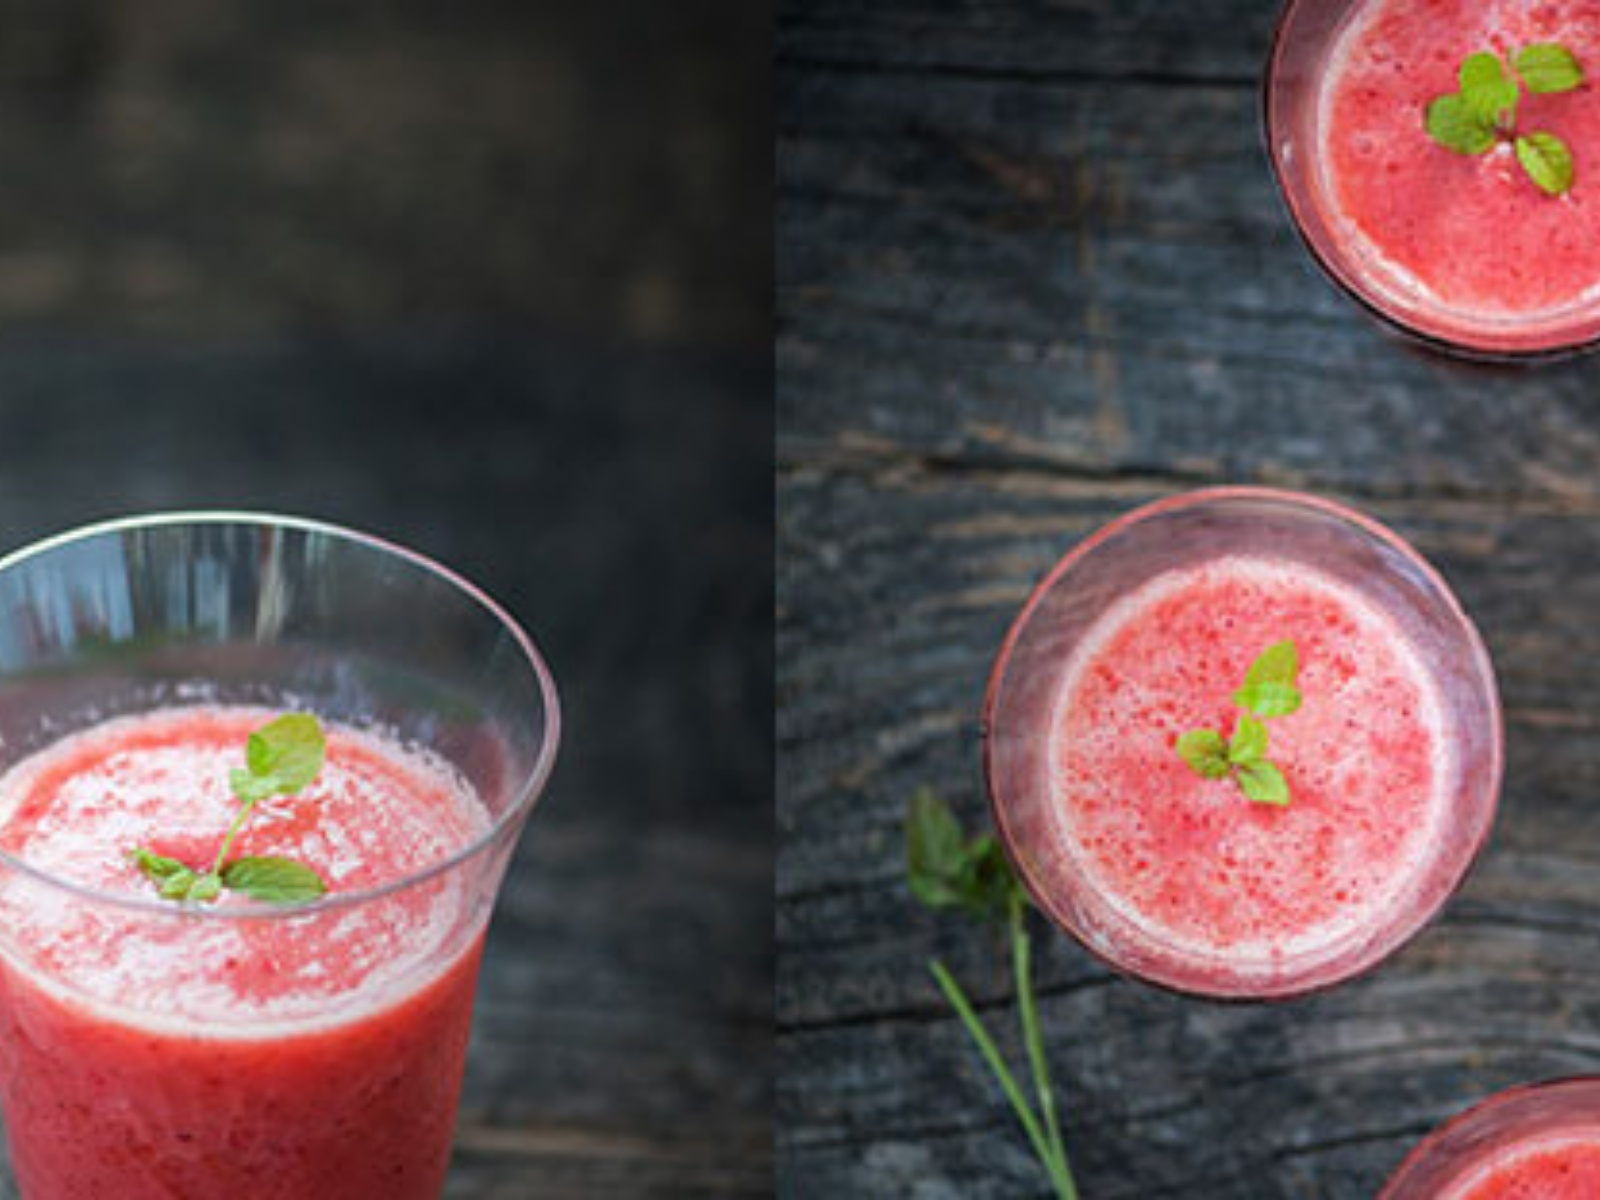 Sweet and yummy vegan watermelon juice